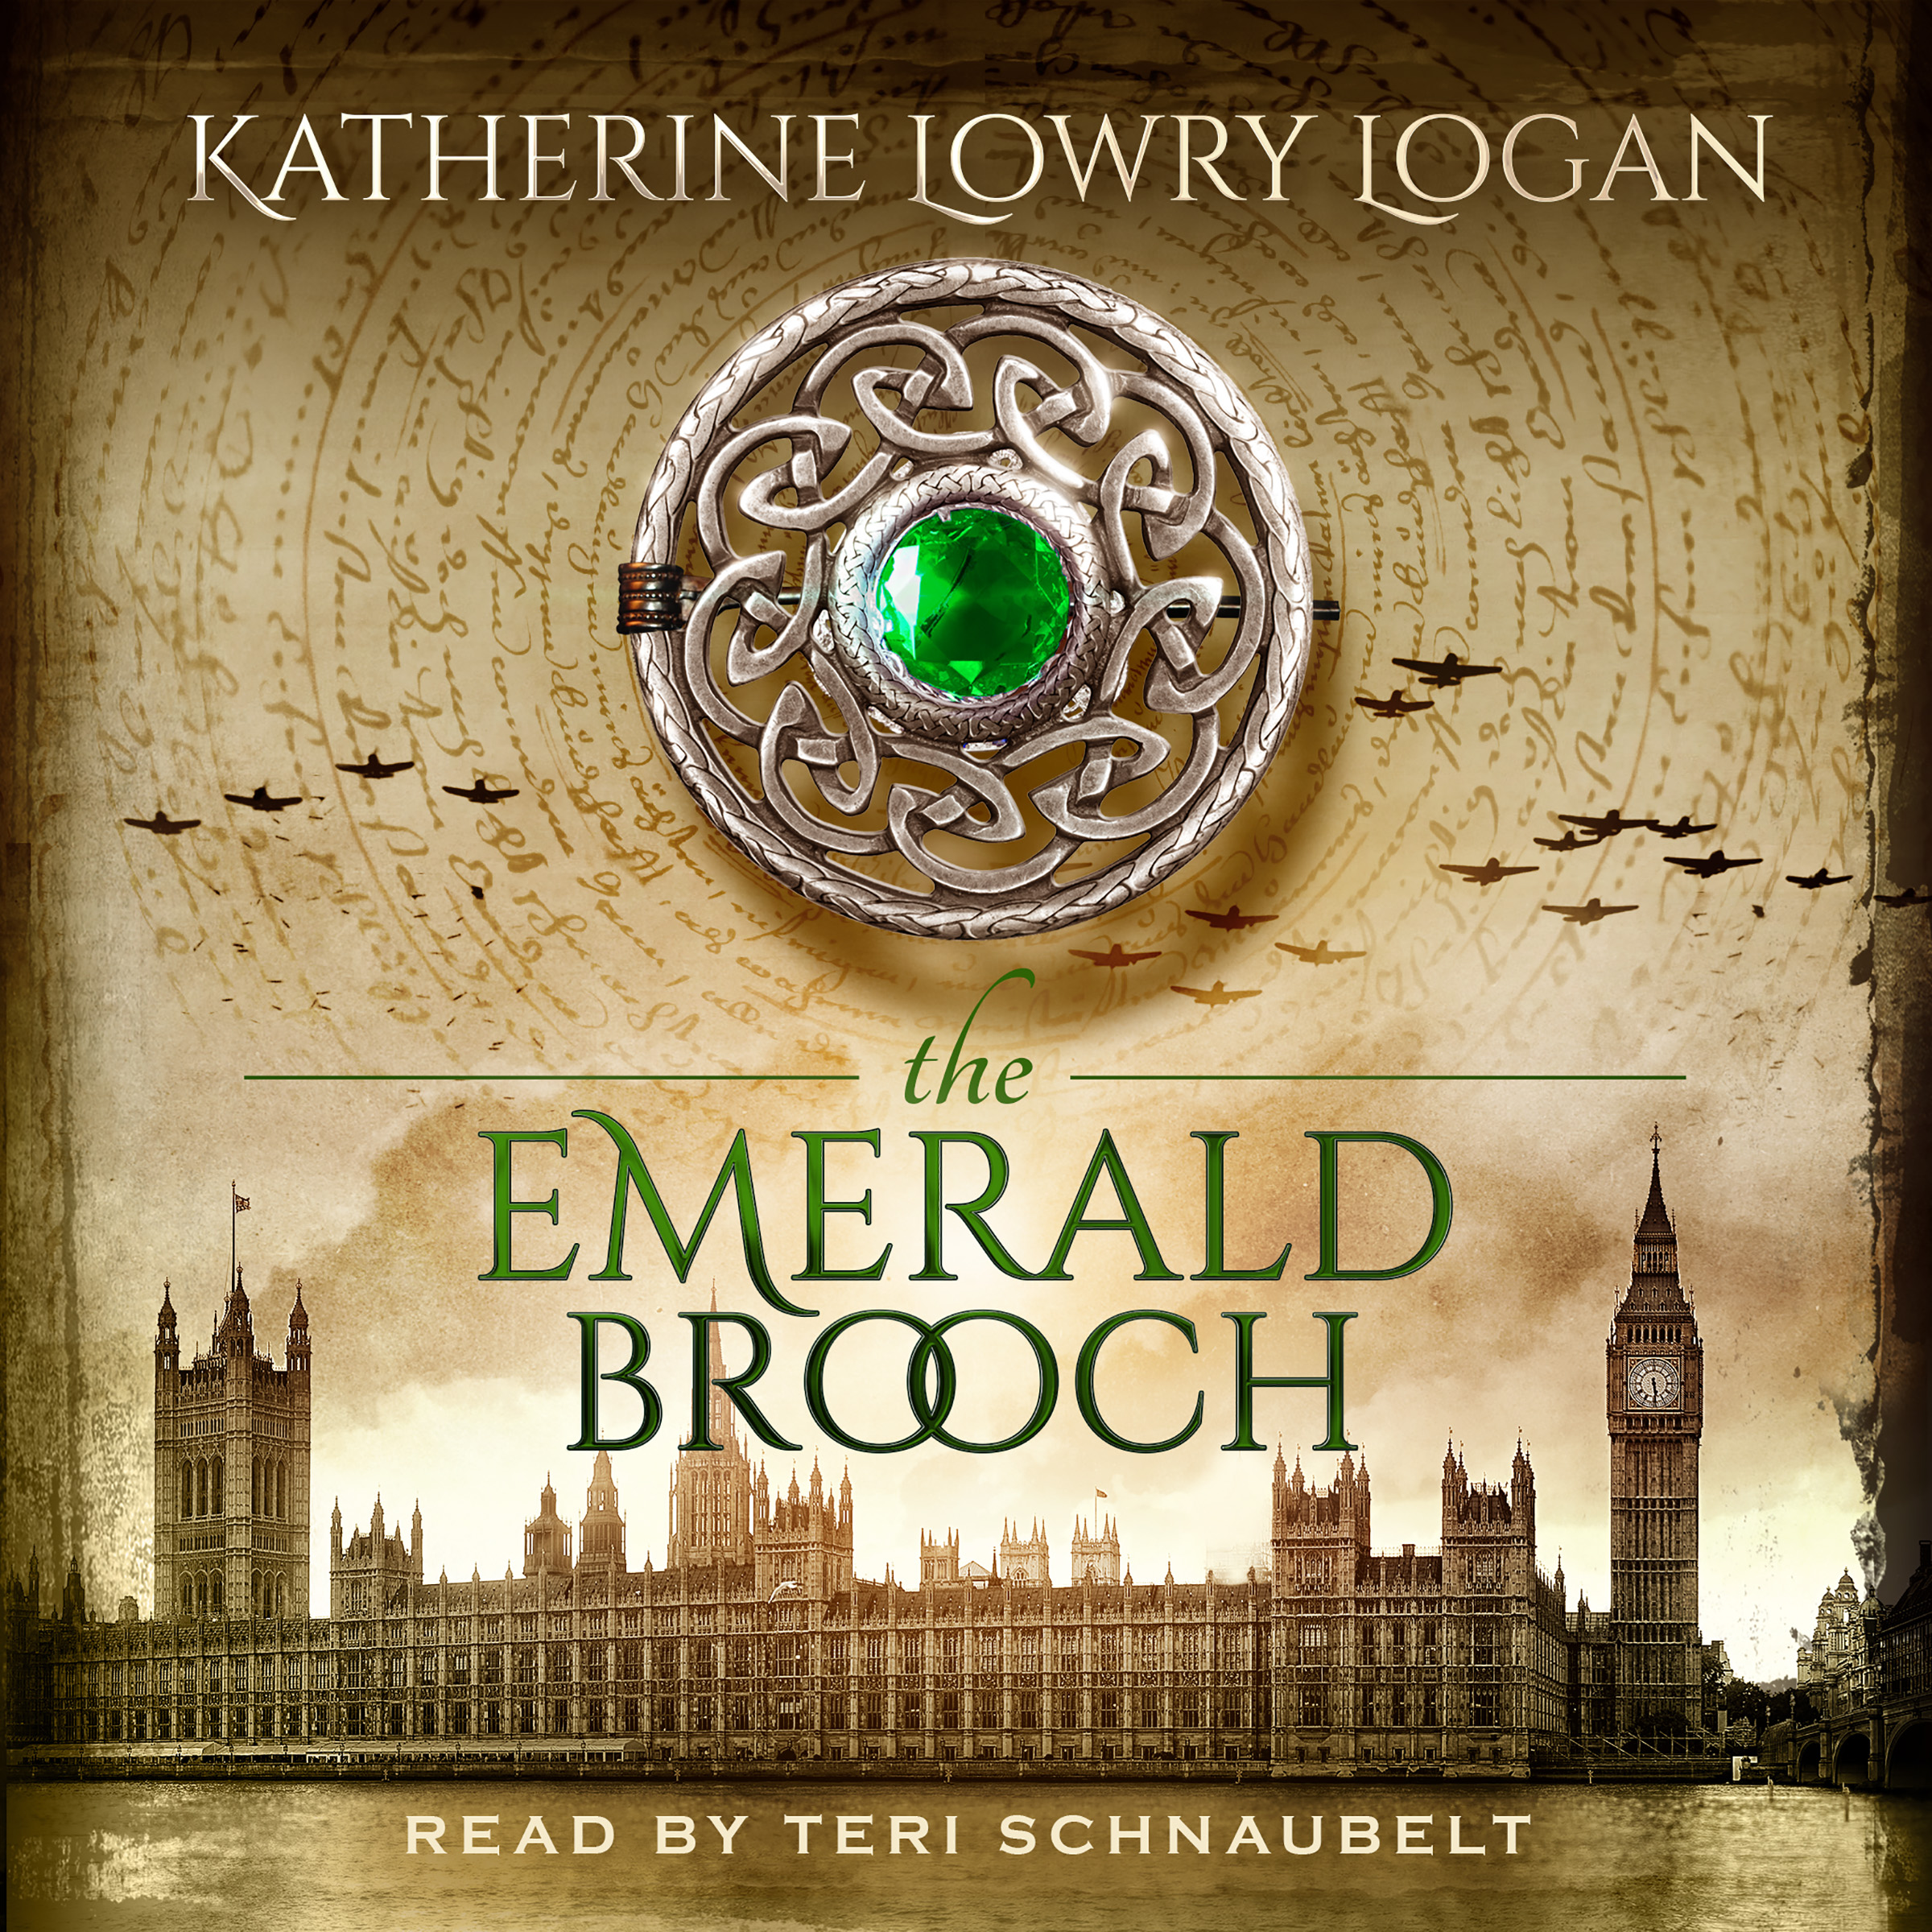 The Emerald Brooch audiobook by Katherine Lowry Logan